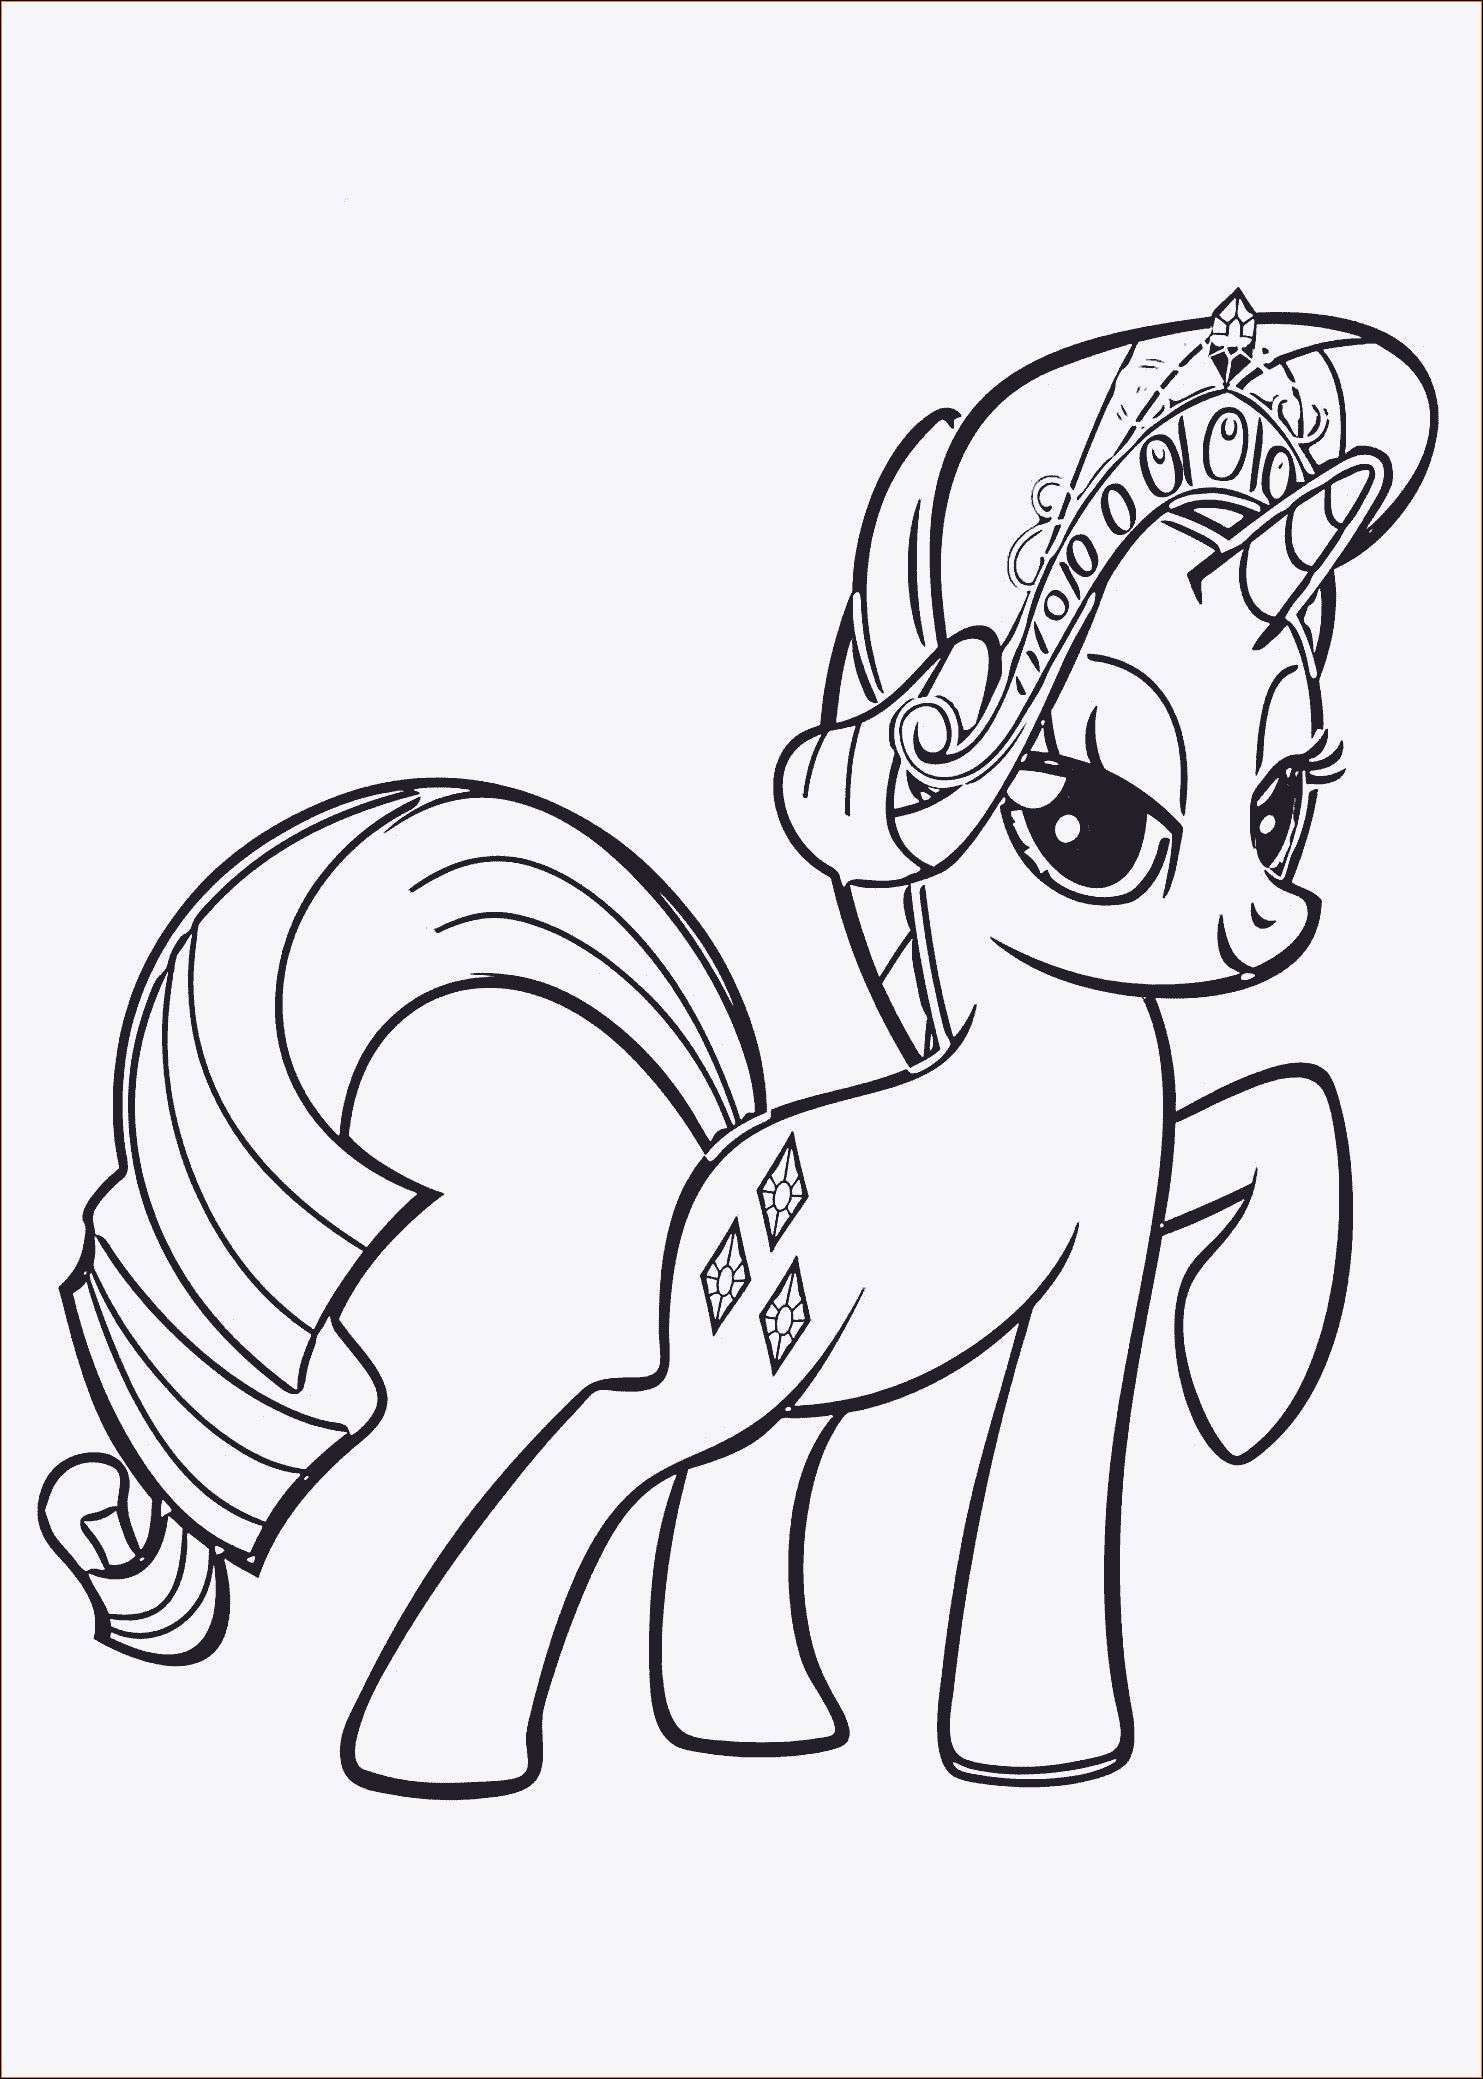 My Little Pony Pinkie Pie Ausmalbilder Neu Elegant Print Happy Pinkie Pie My Little Pony Coloring Pages Living Stock